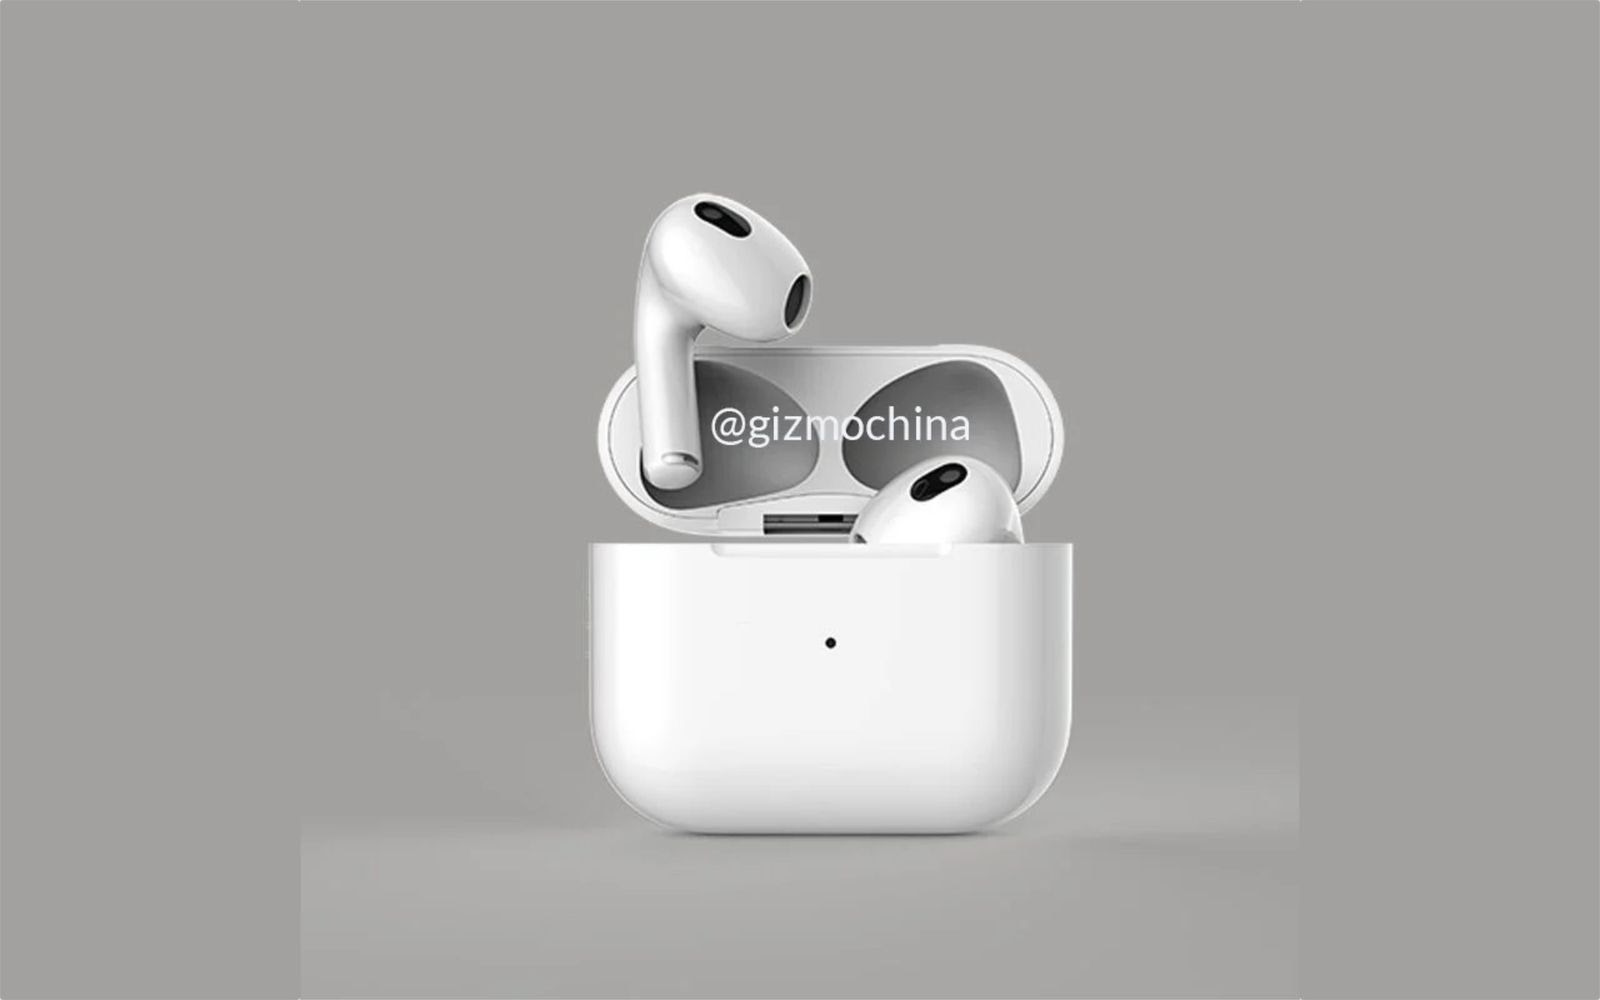 Next-Generation AirPods Reportedly Already in Production Despite Not Being Announced at Apple Event